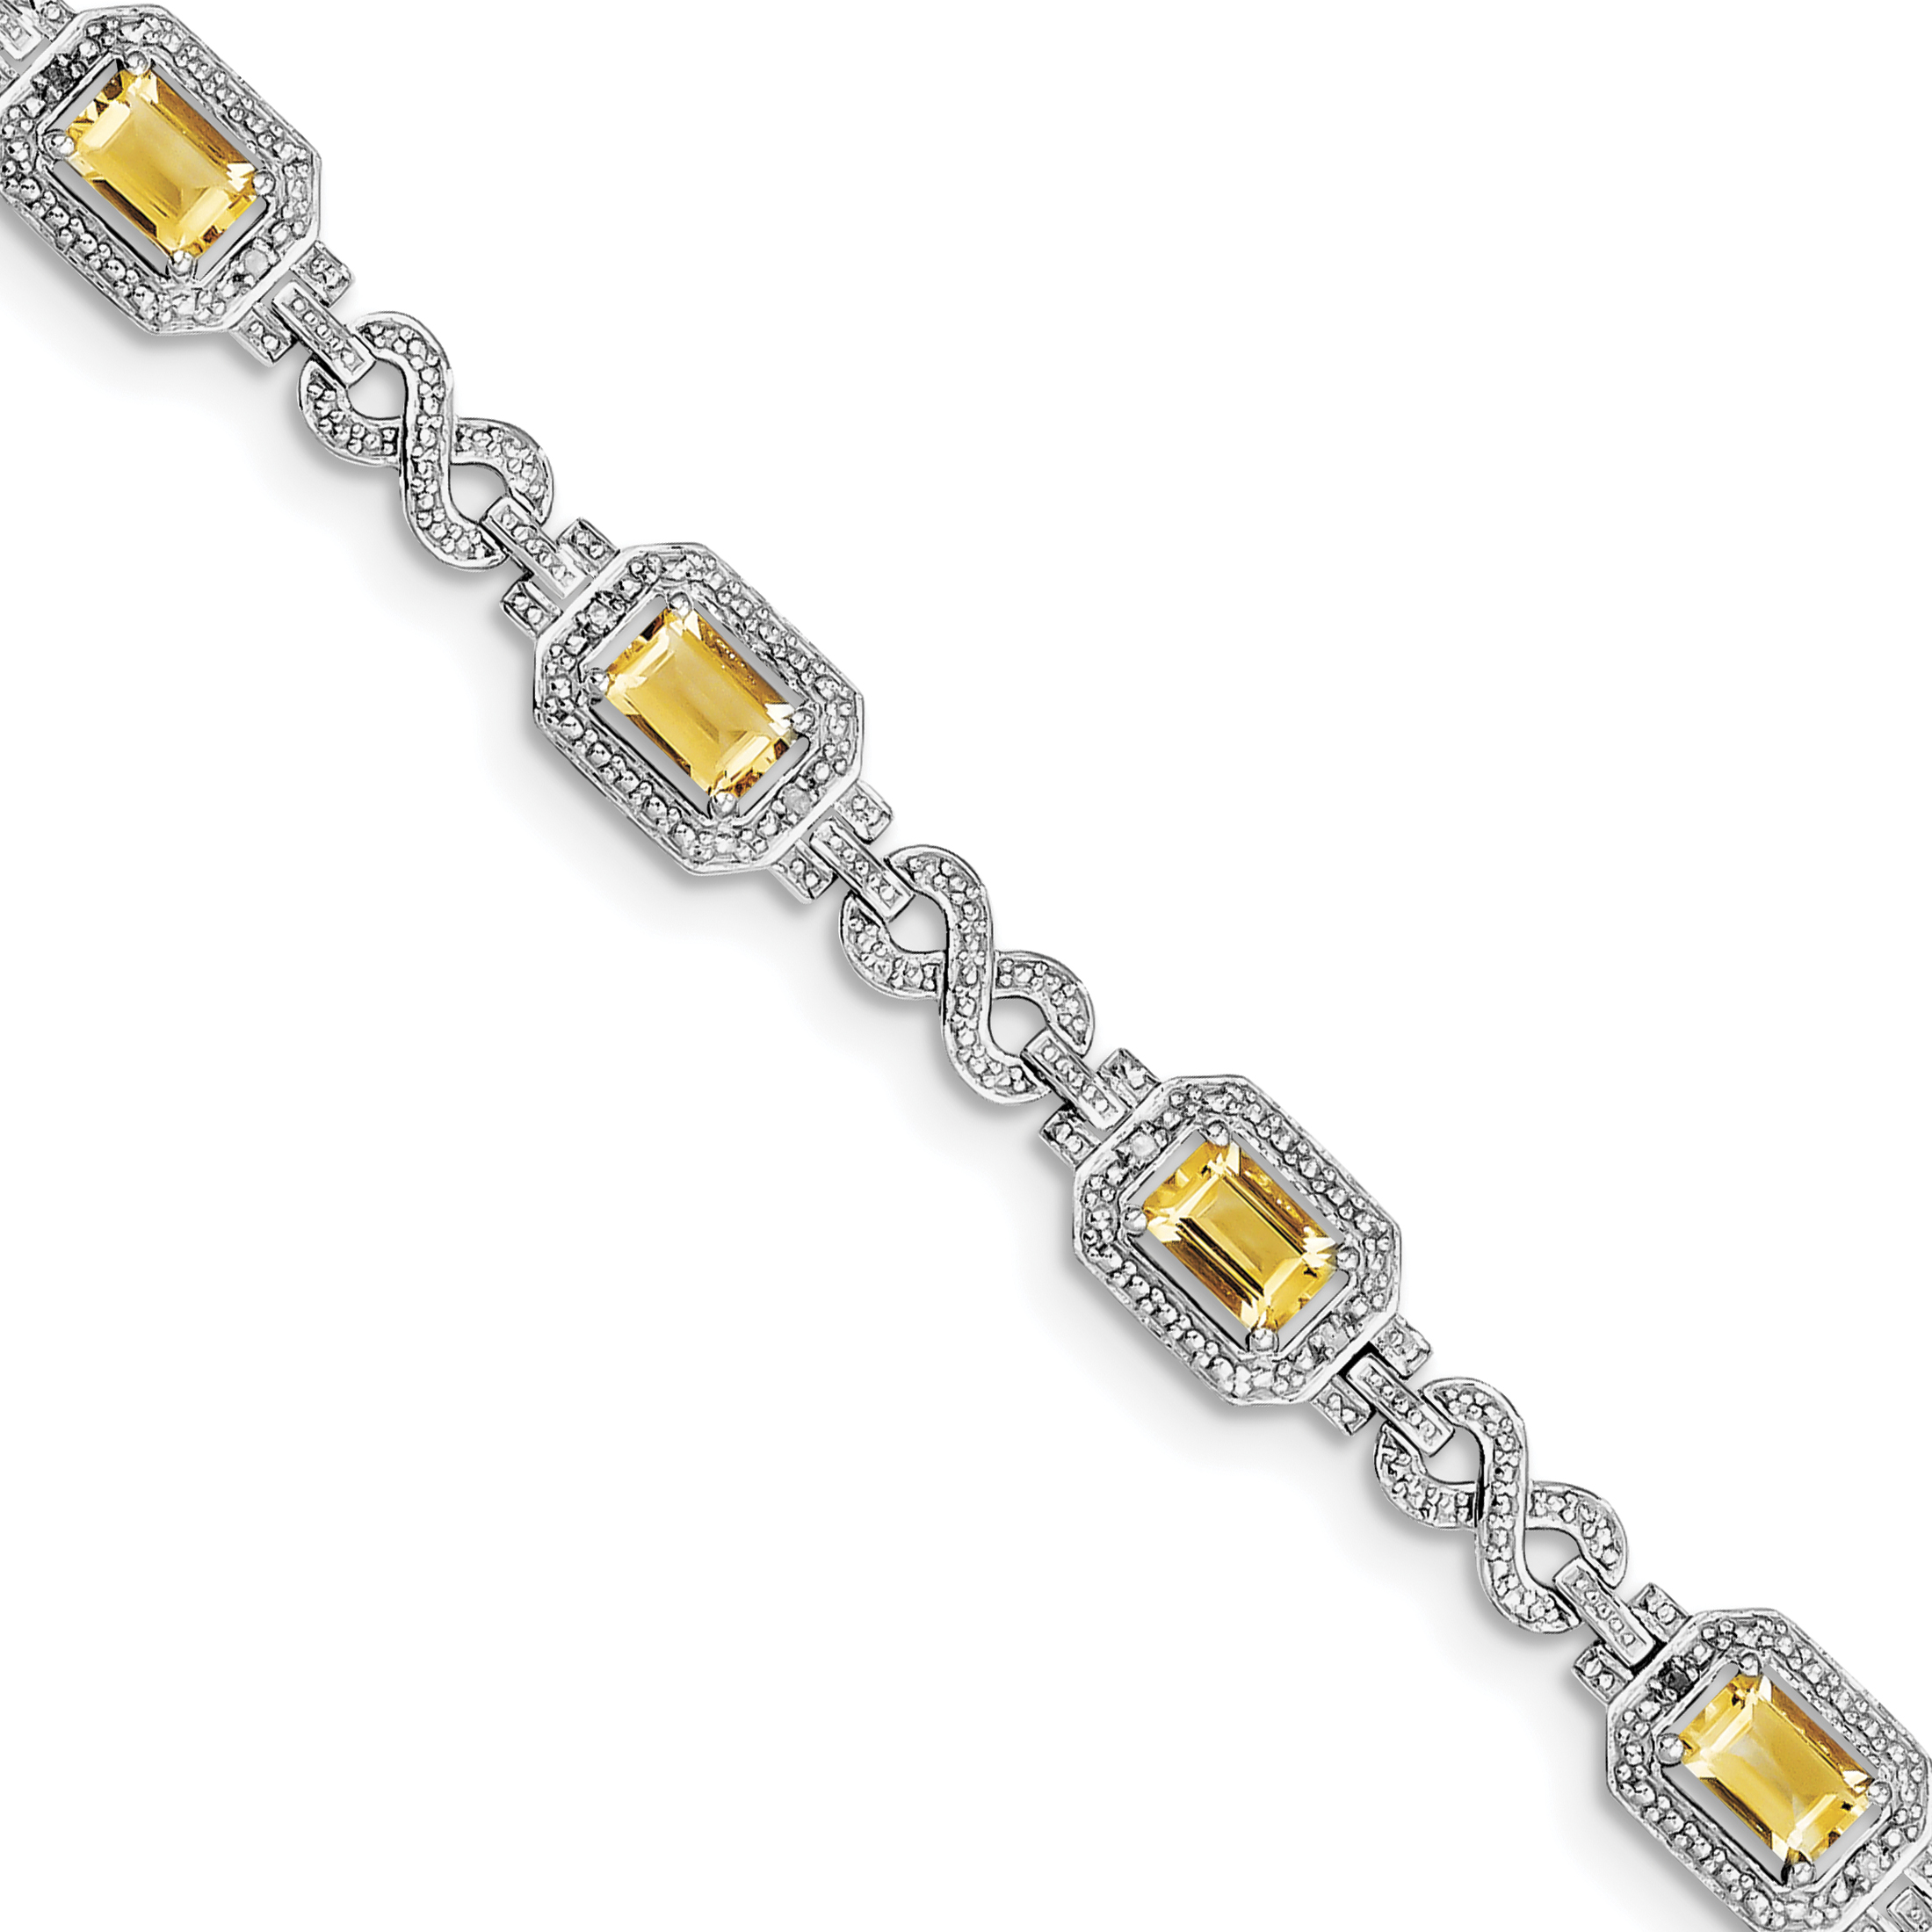 925 Sterling Silver Rhodium-plated Diamond & Citrine Bracelet by